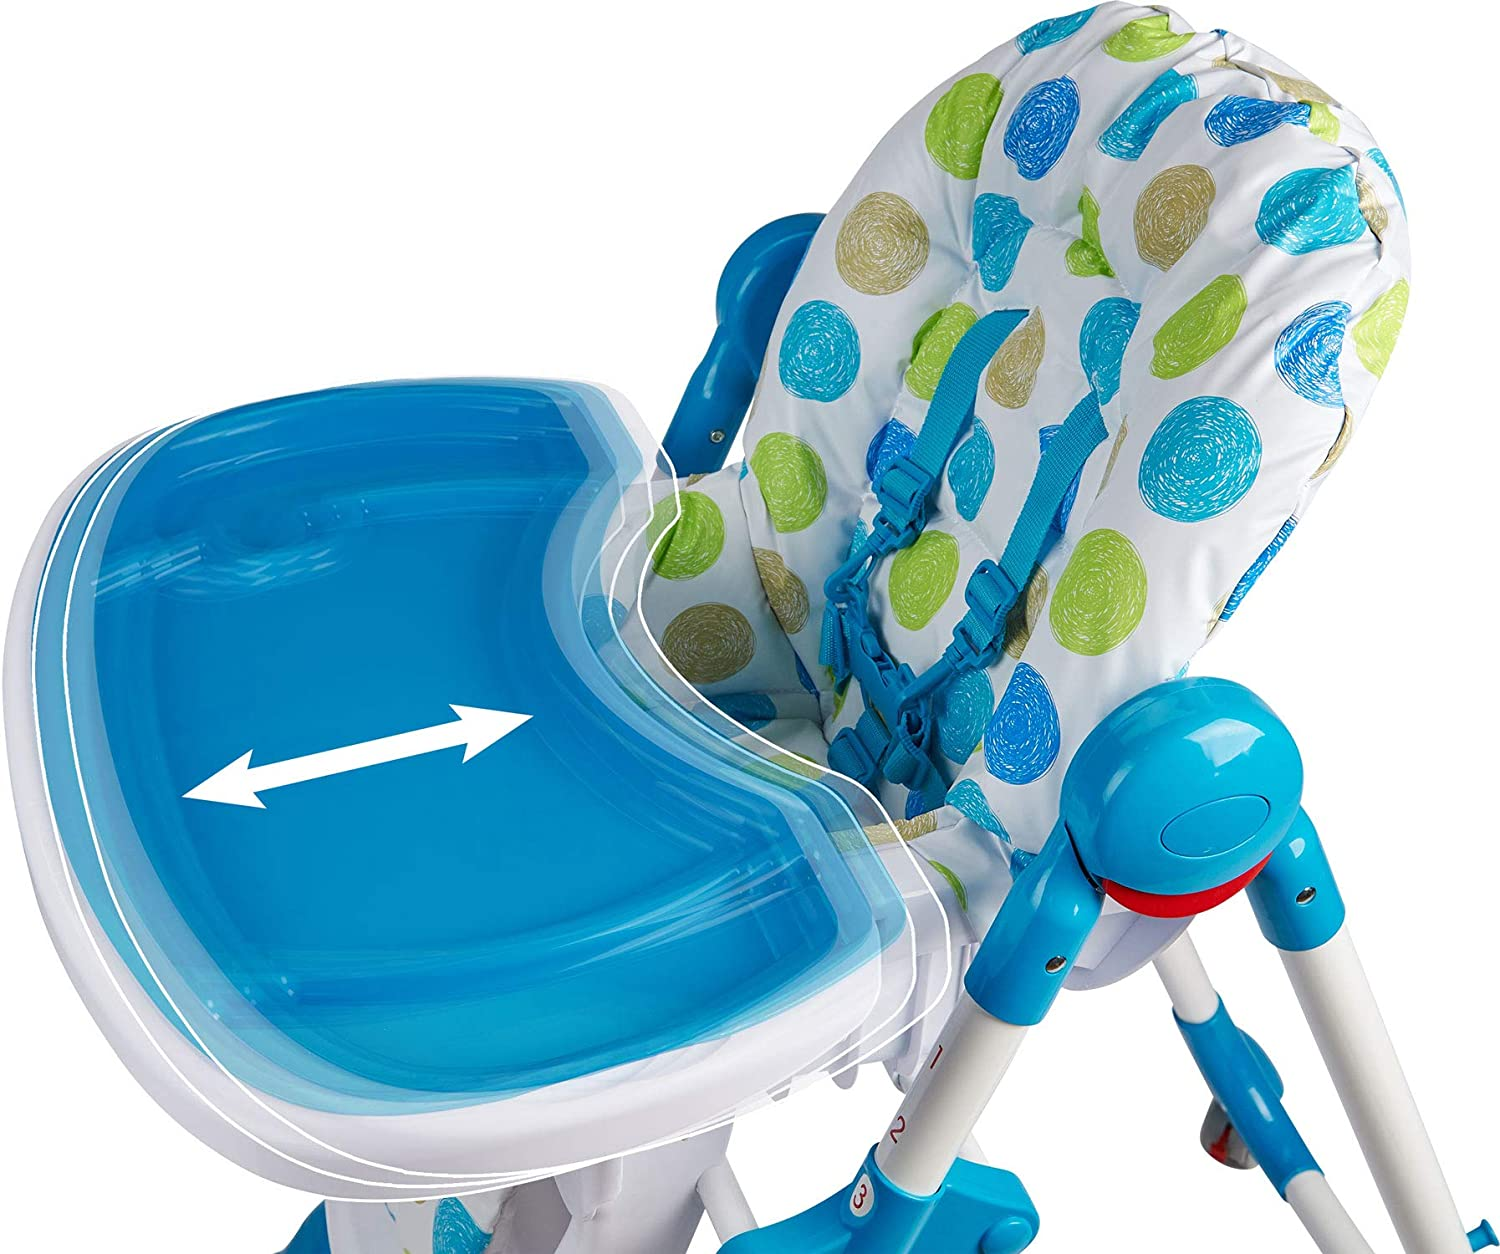 Foldable ib style/® Jule Circles Blue Premium high Chair with Adjustable seat 5-Point Security Belt